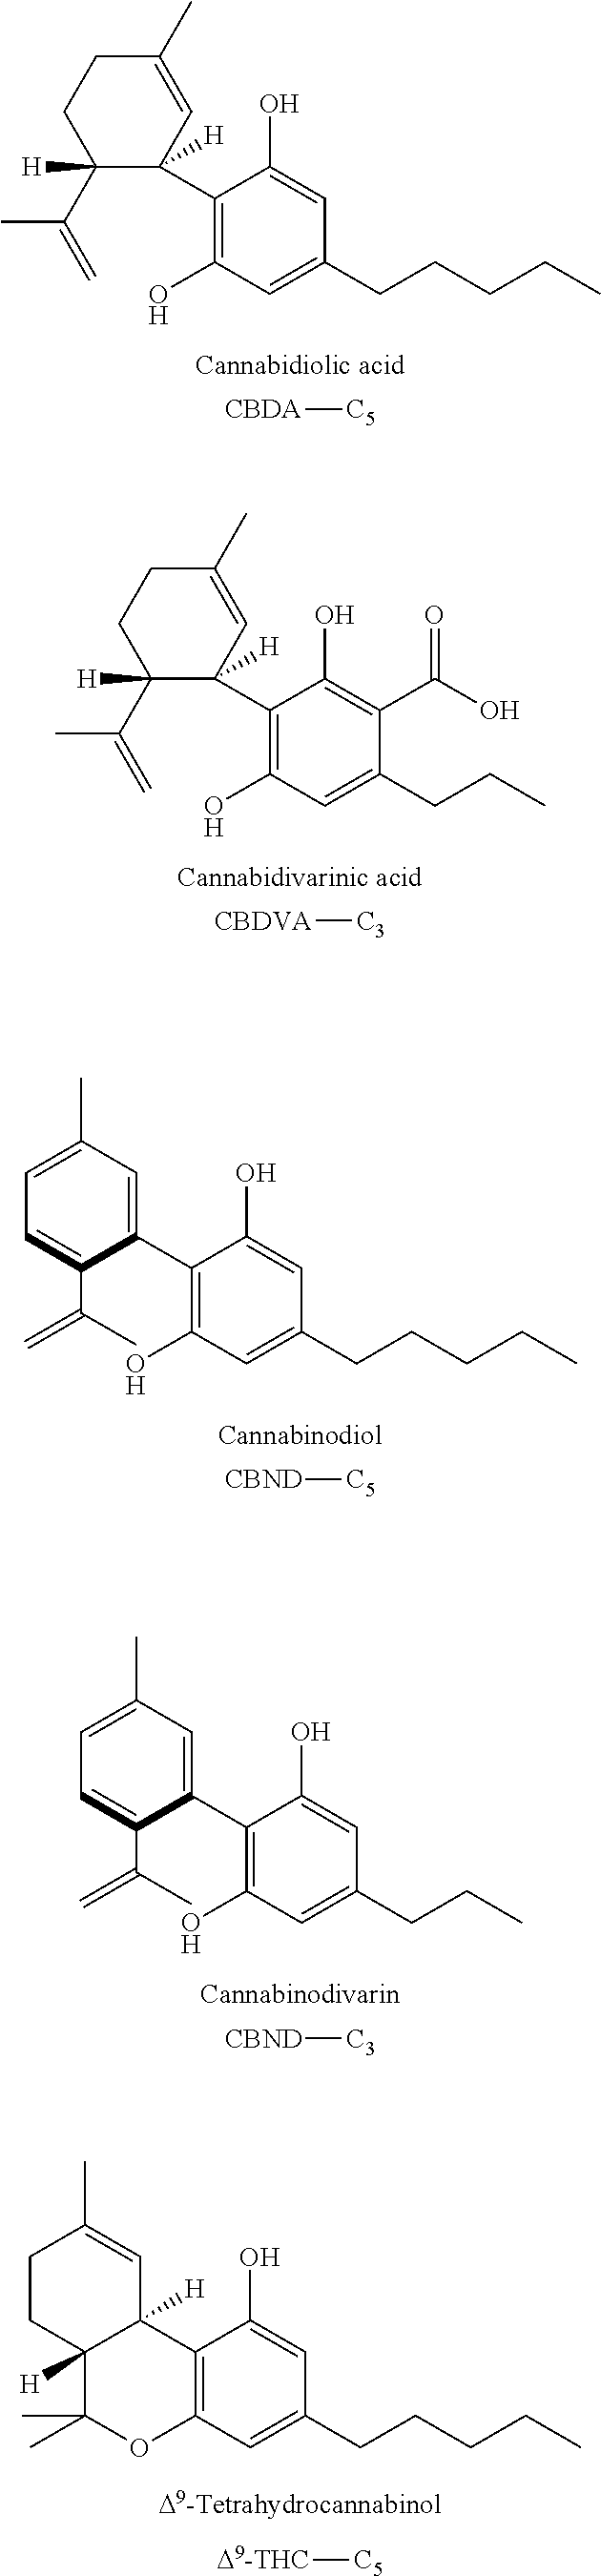 us20140271940a1 bioactive concentrates and uses thereof google